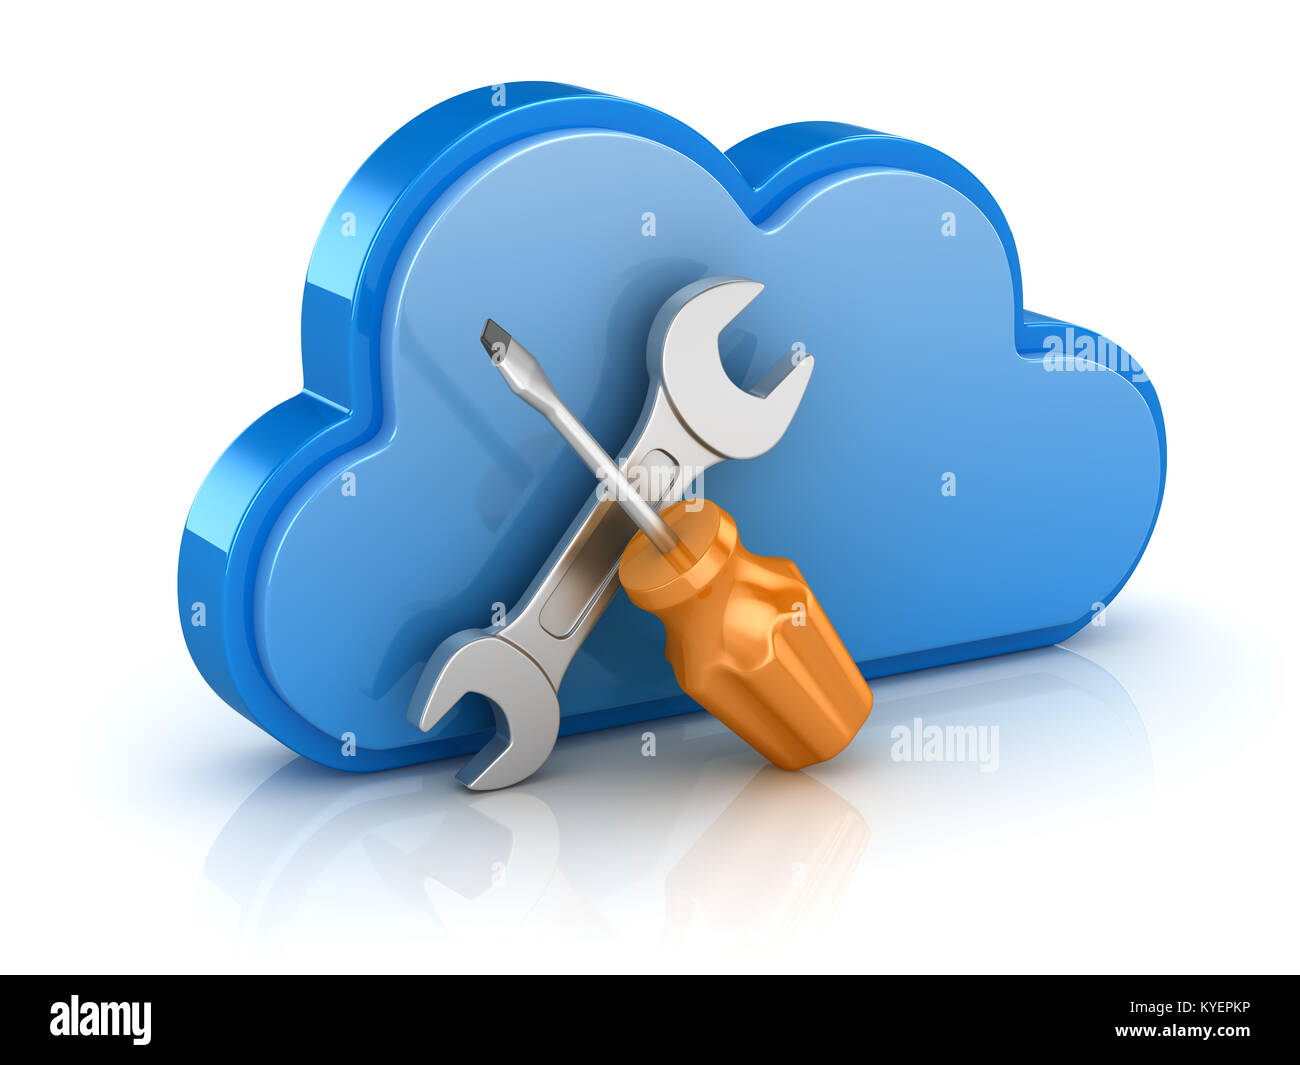 Wrench icon 3d stock photos wrench icon 3d stock images alamy screw driver and wrench with cloud this is a 3d rendered computer generated image buycottarizona